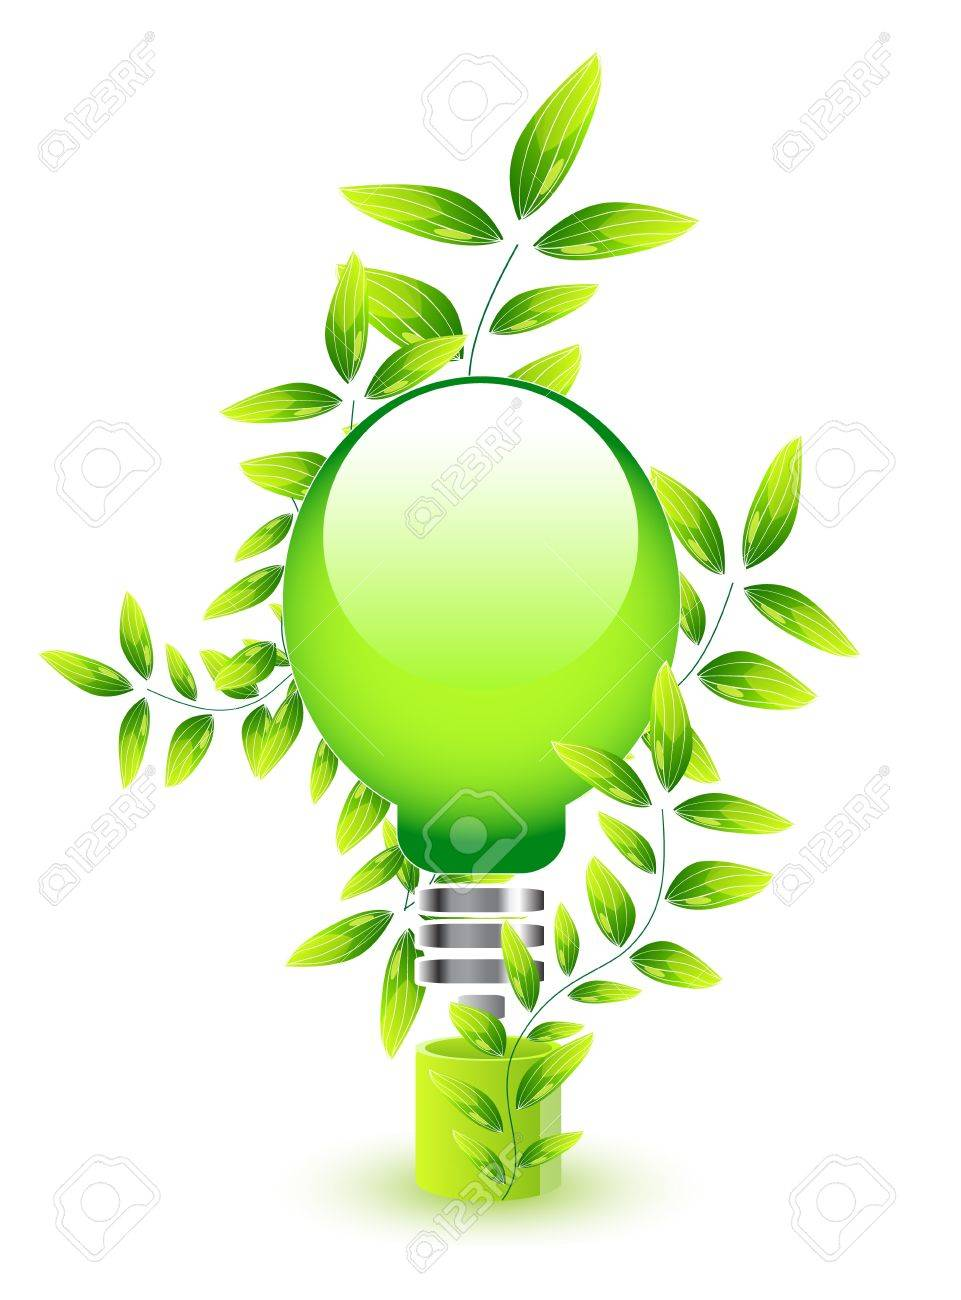 Nature light bulb icon Stock Vector - 13229423